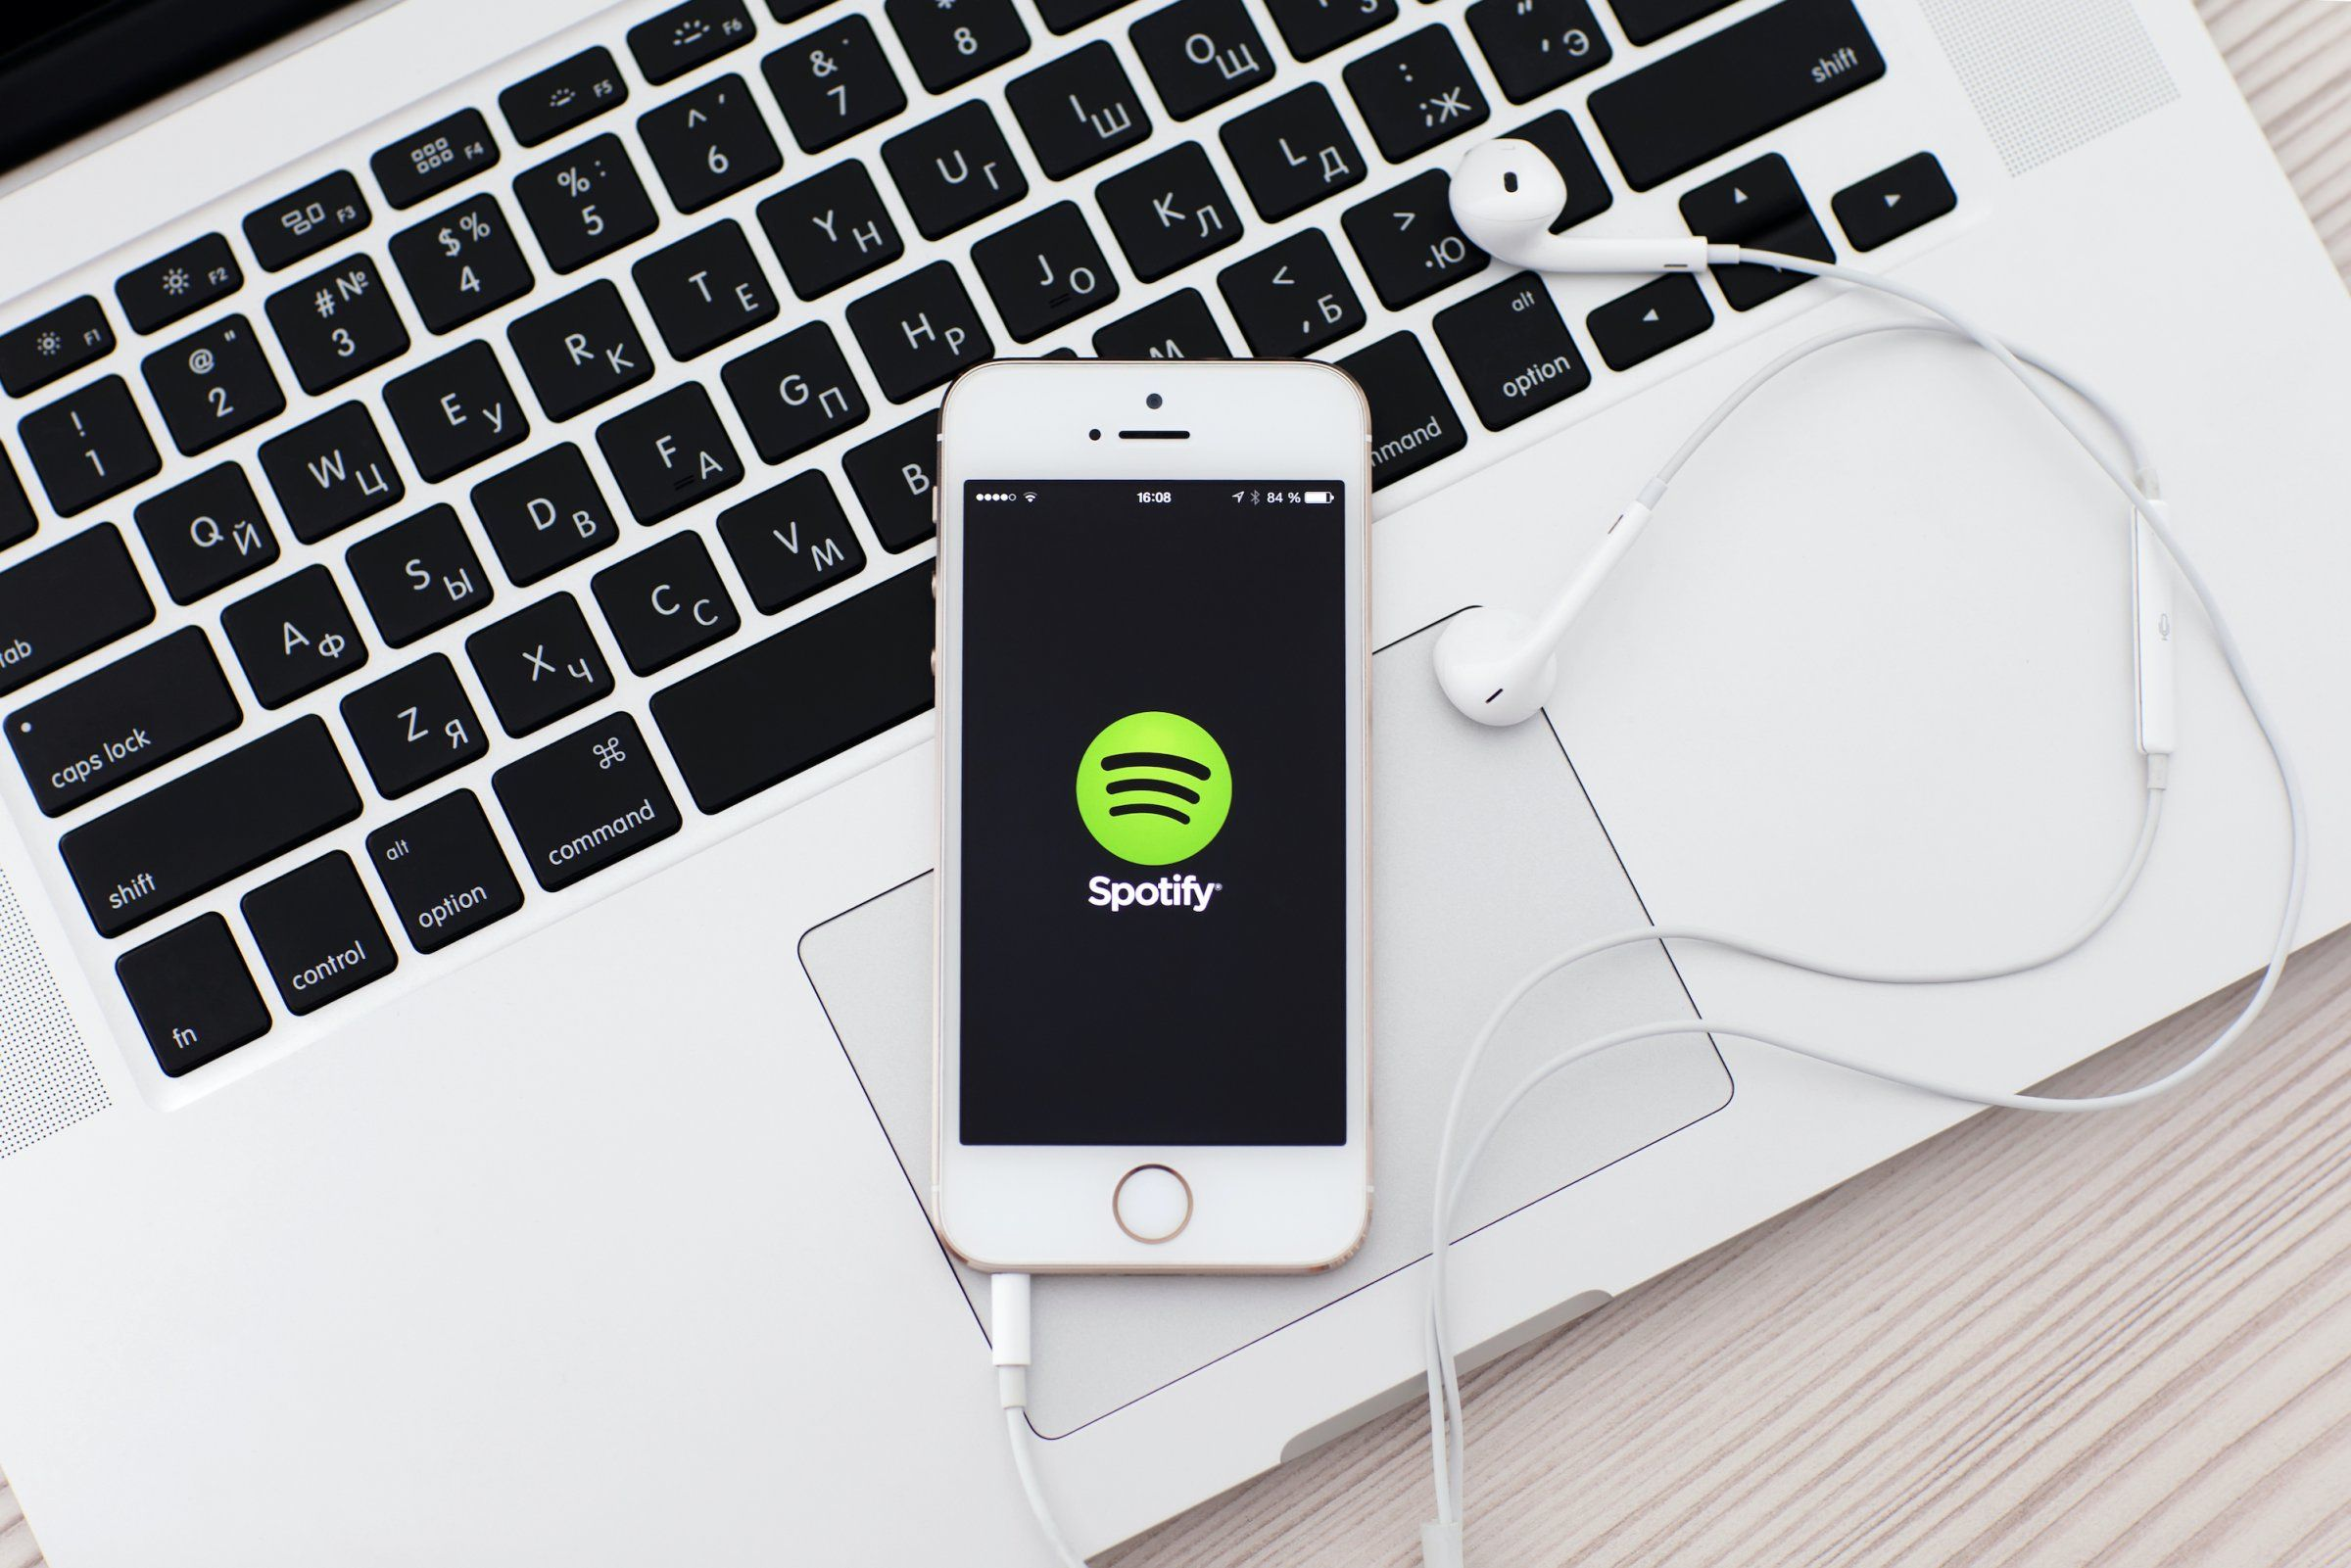 How to download music from Spotify and listen to your